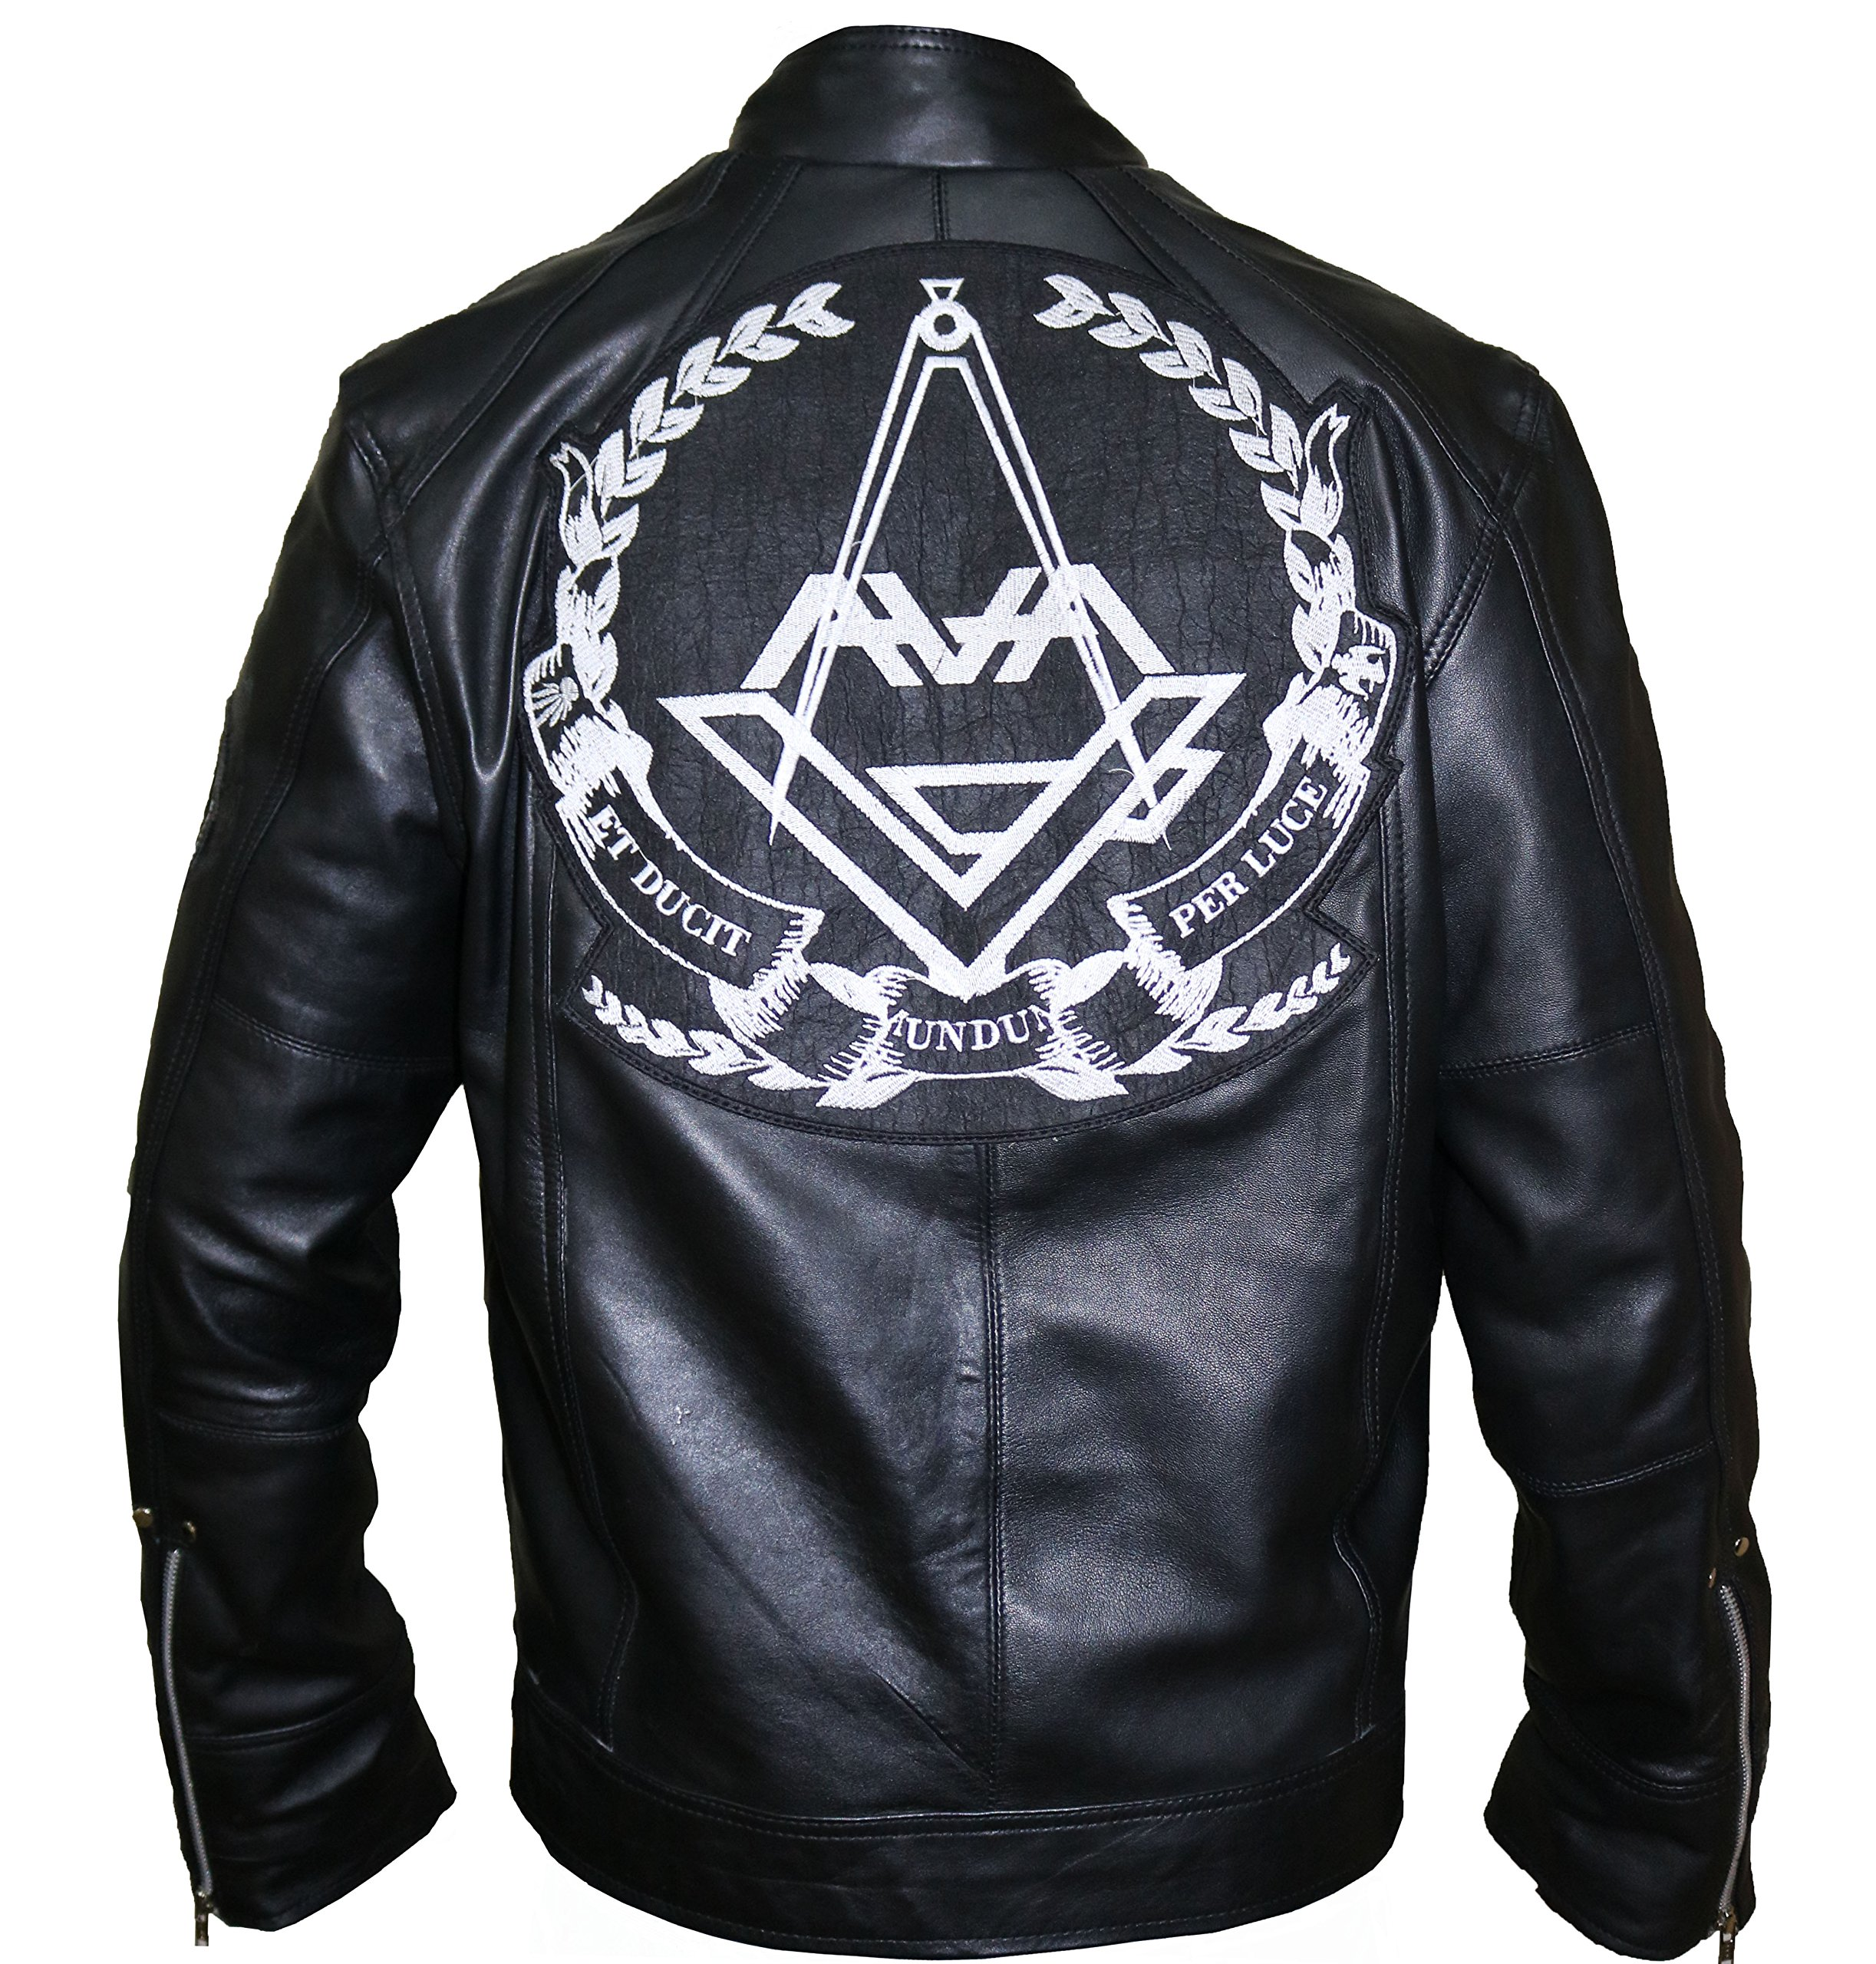 Angels and Airwaves Love Tom Delonge Cow Leather Jacket,3XL. by The Jasperz (Image #1)